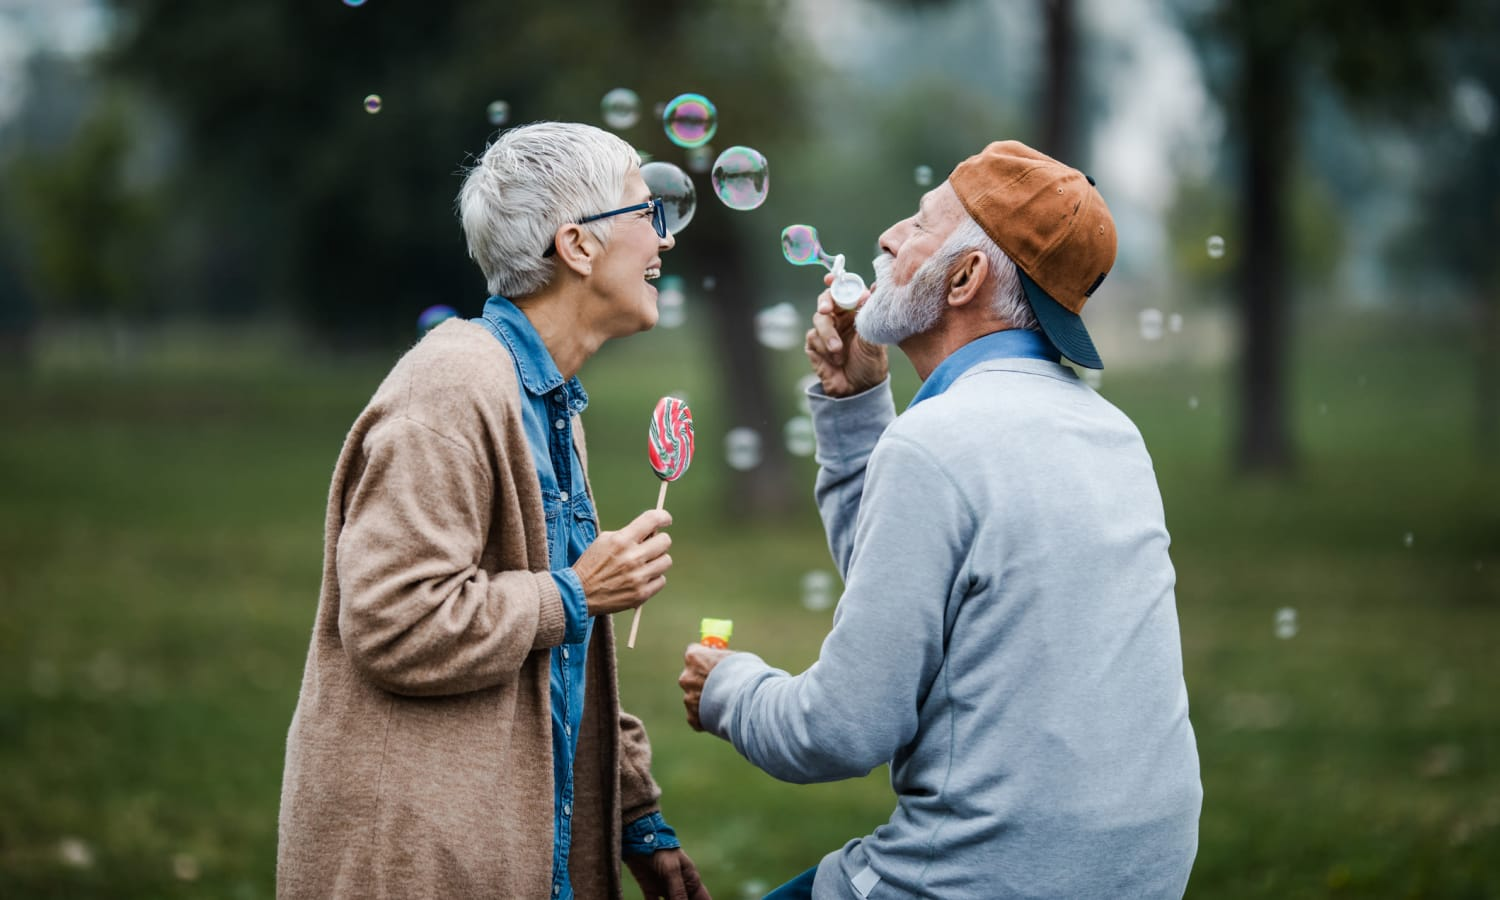 Residents blowing bubbles at Barnett Woods in Medford, Oregon